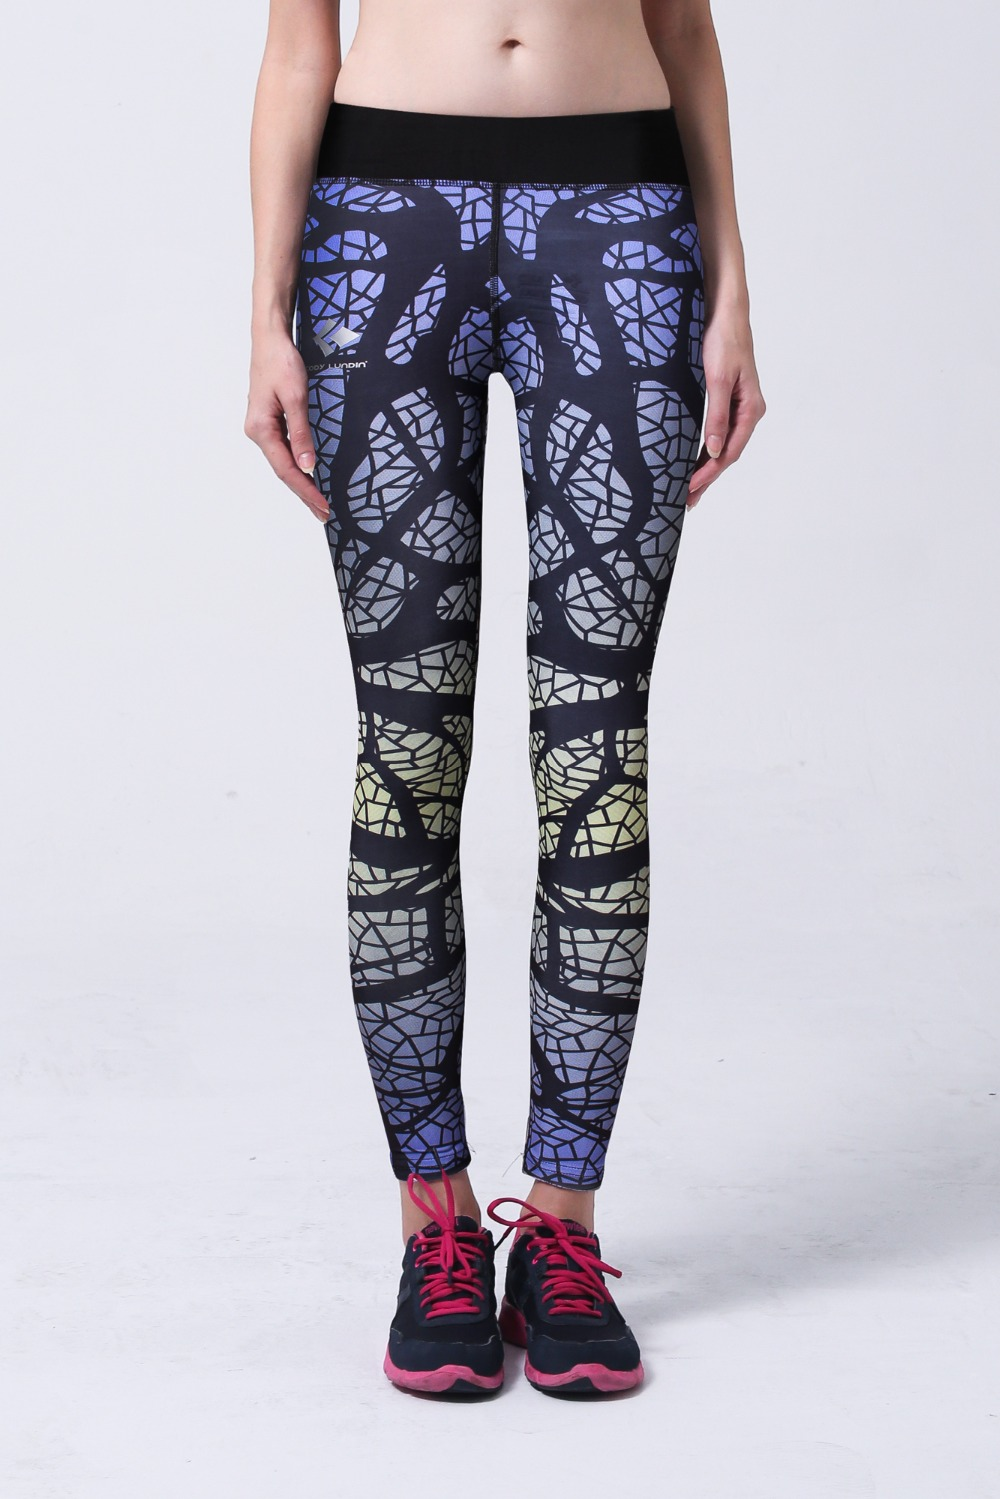 Women Yoga Clothing Sports Pants Legging Tights Workout Sport Fitness Bodybuilding And Clothes Running Leggings For Female